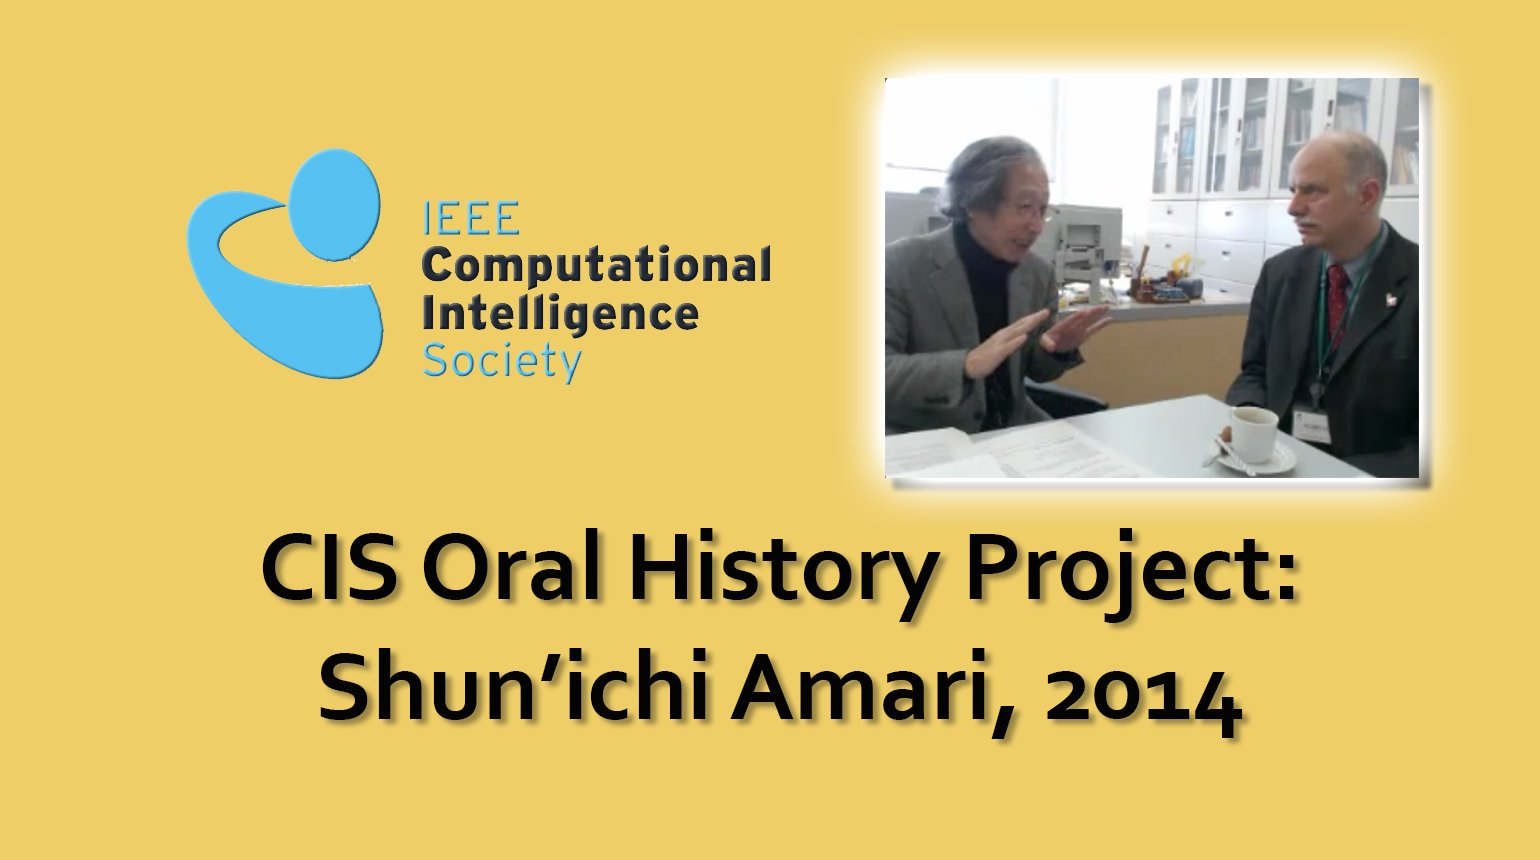 Interview with Shun'ichi Amari, 2014: CIS Oral History Project